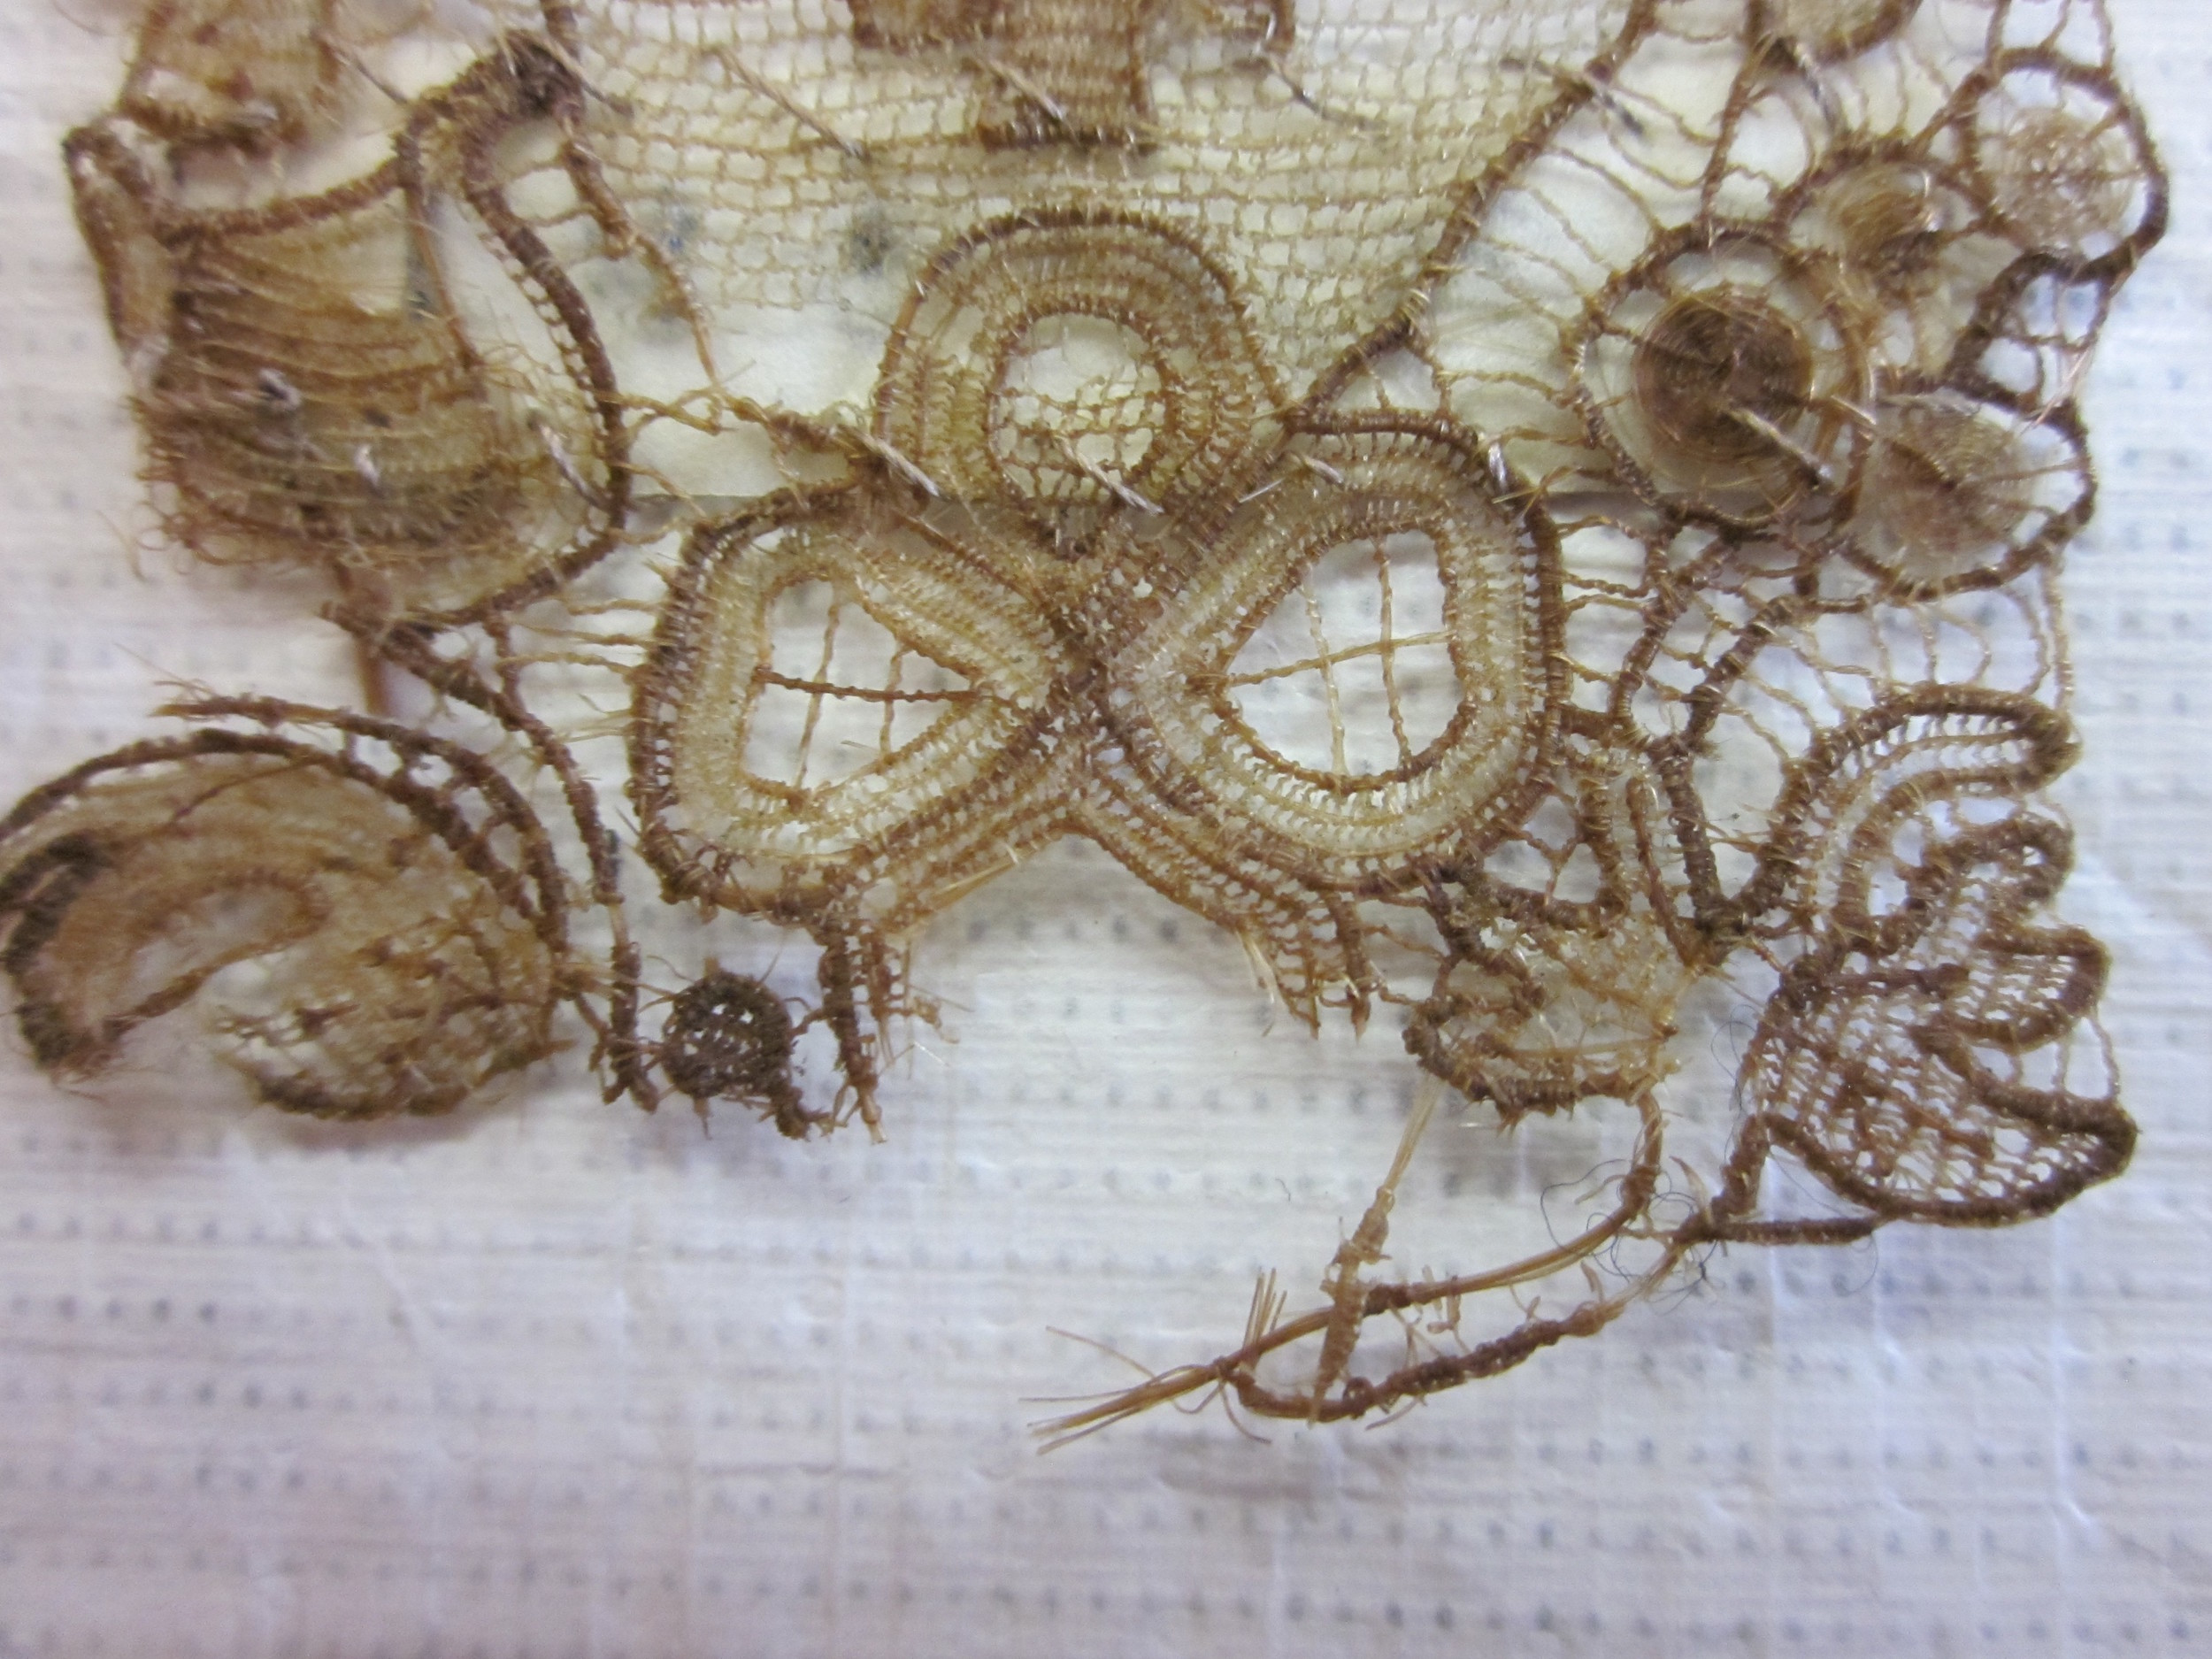 17thC Needlelace, The Victoria + Albert Museum Collection